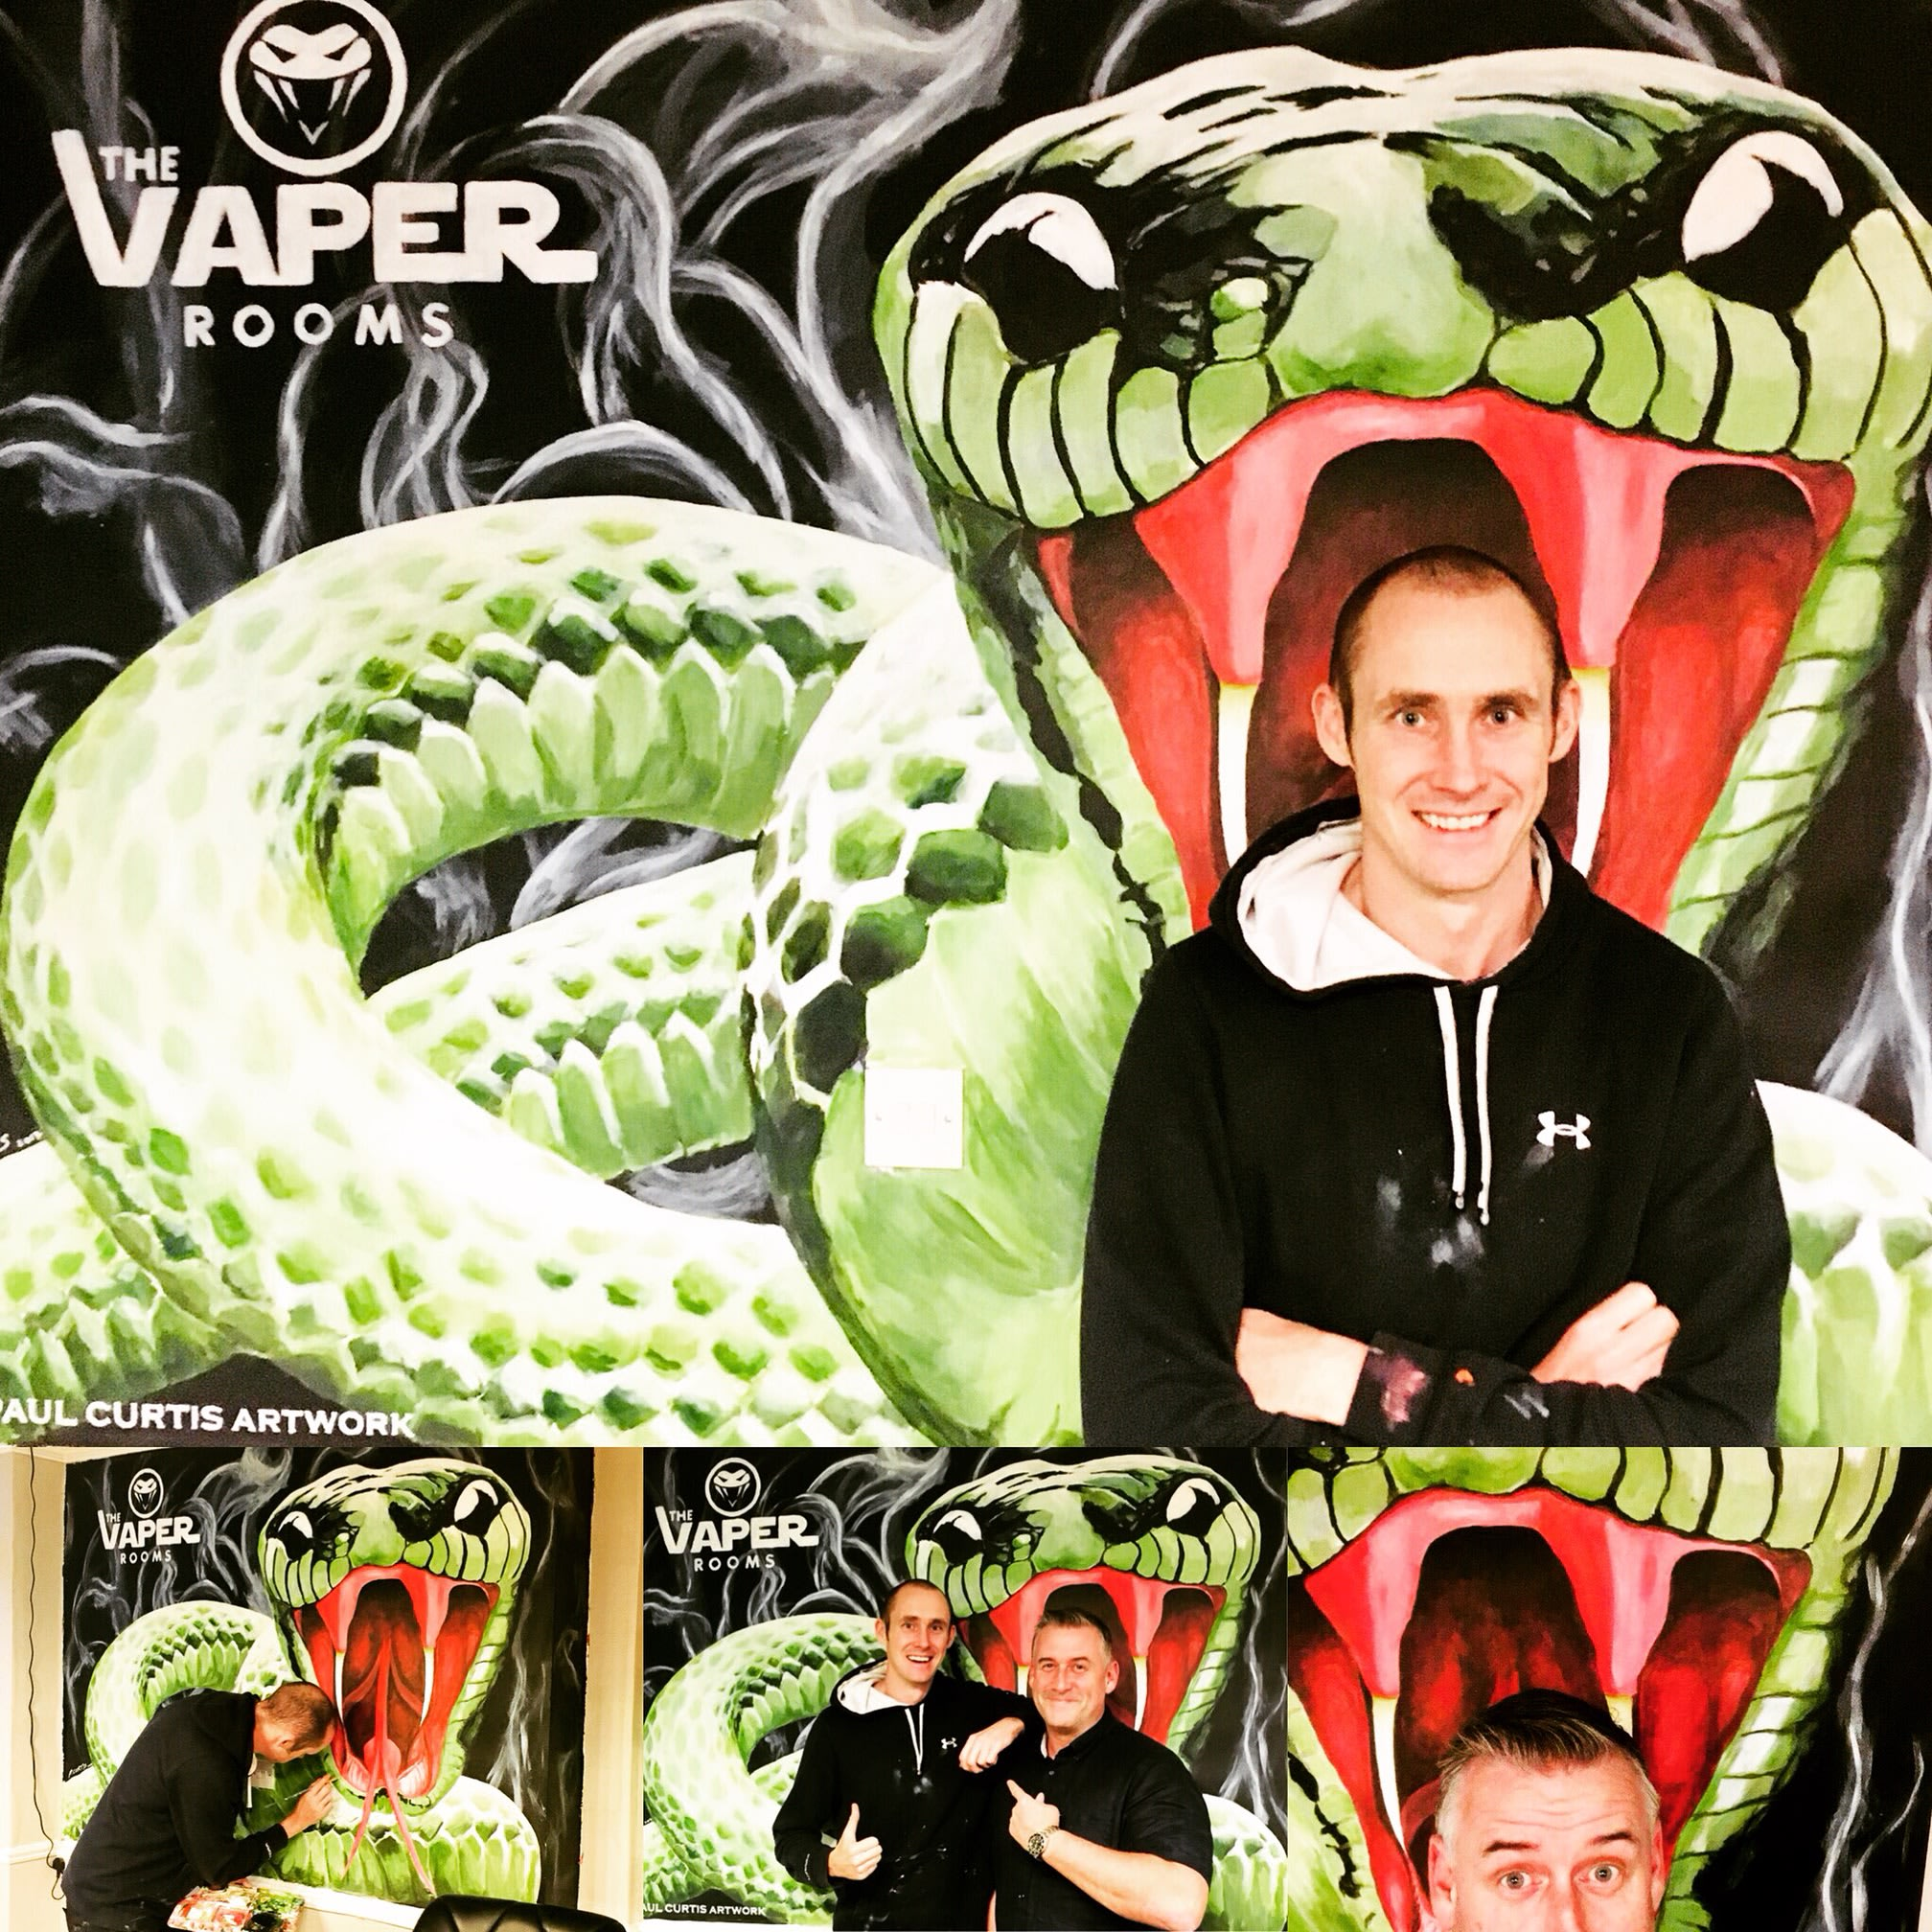 The Vaper Rooms